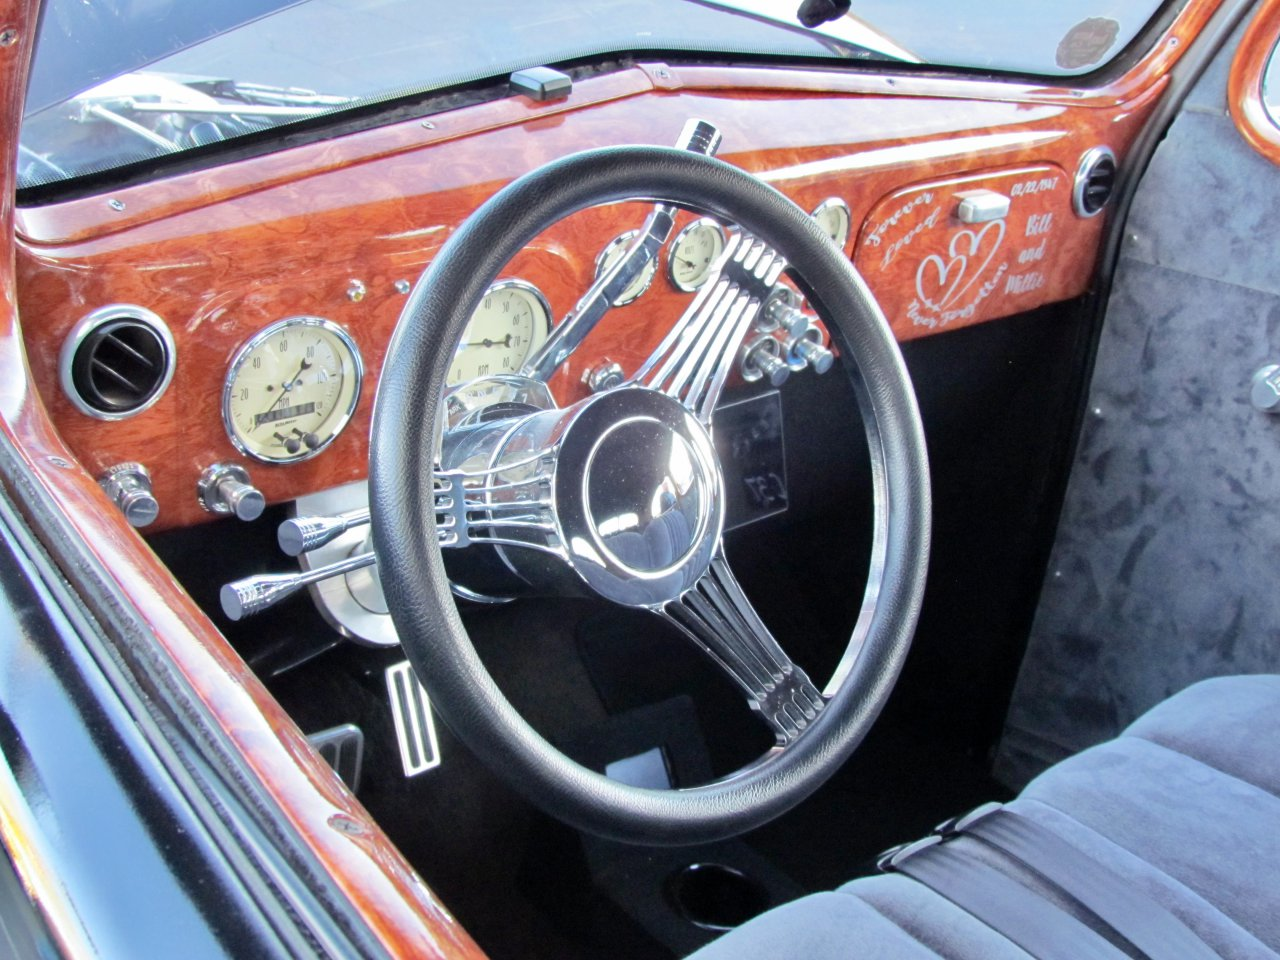 Mazda, Full circle: Mom's rotary-powered Mazda begets son's devotion, ClassicCars.com Journal